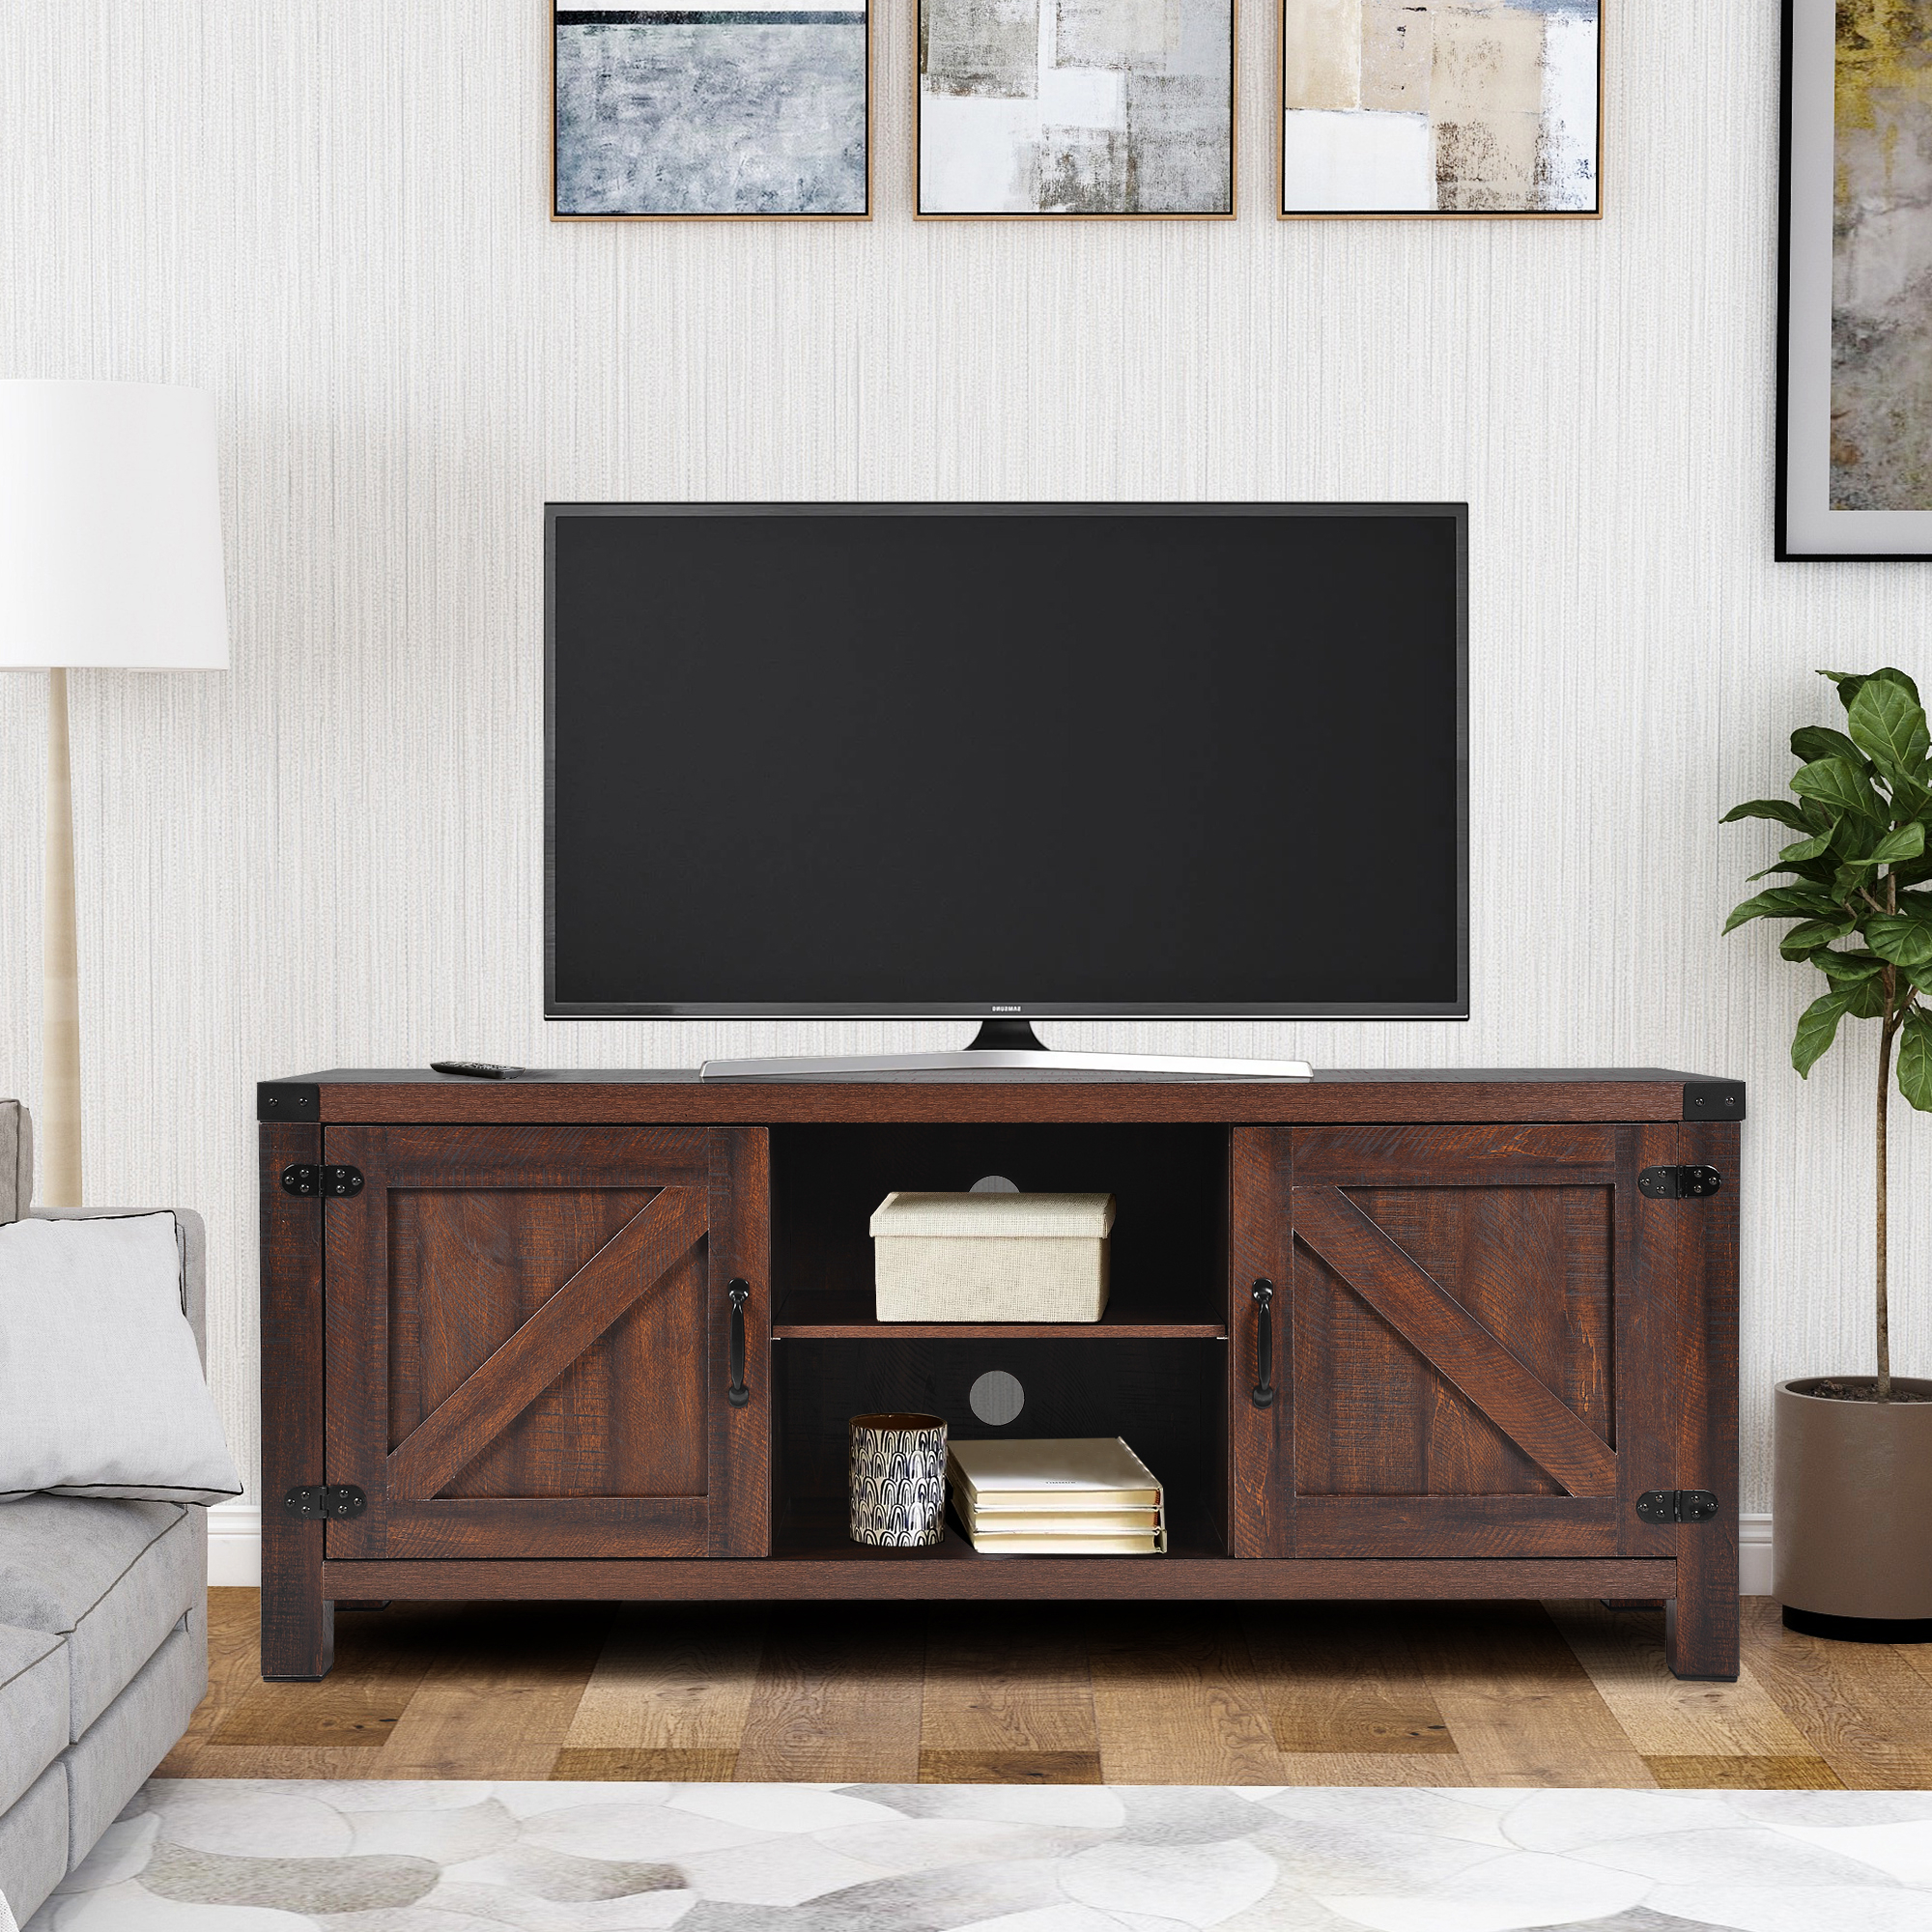 Barn Door Wood Tv Stands Intended For Famous 58 Inch Wood Tv Stand, Farmhouse Tv Stand With Fireplace (View 6 of 10)